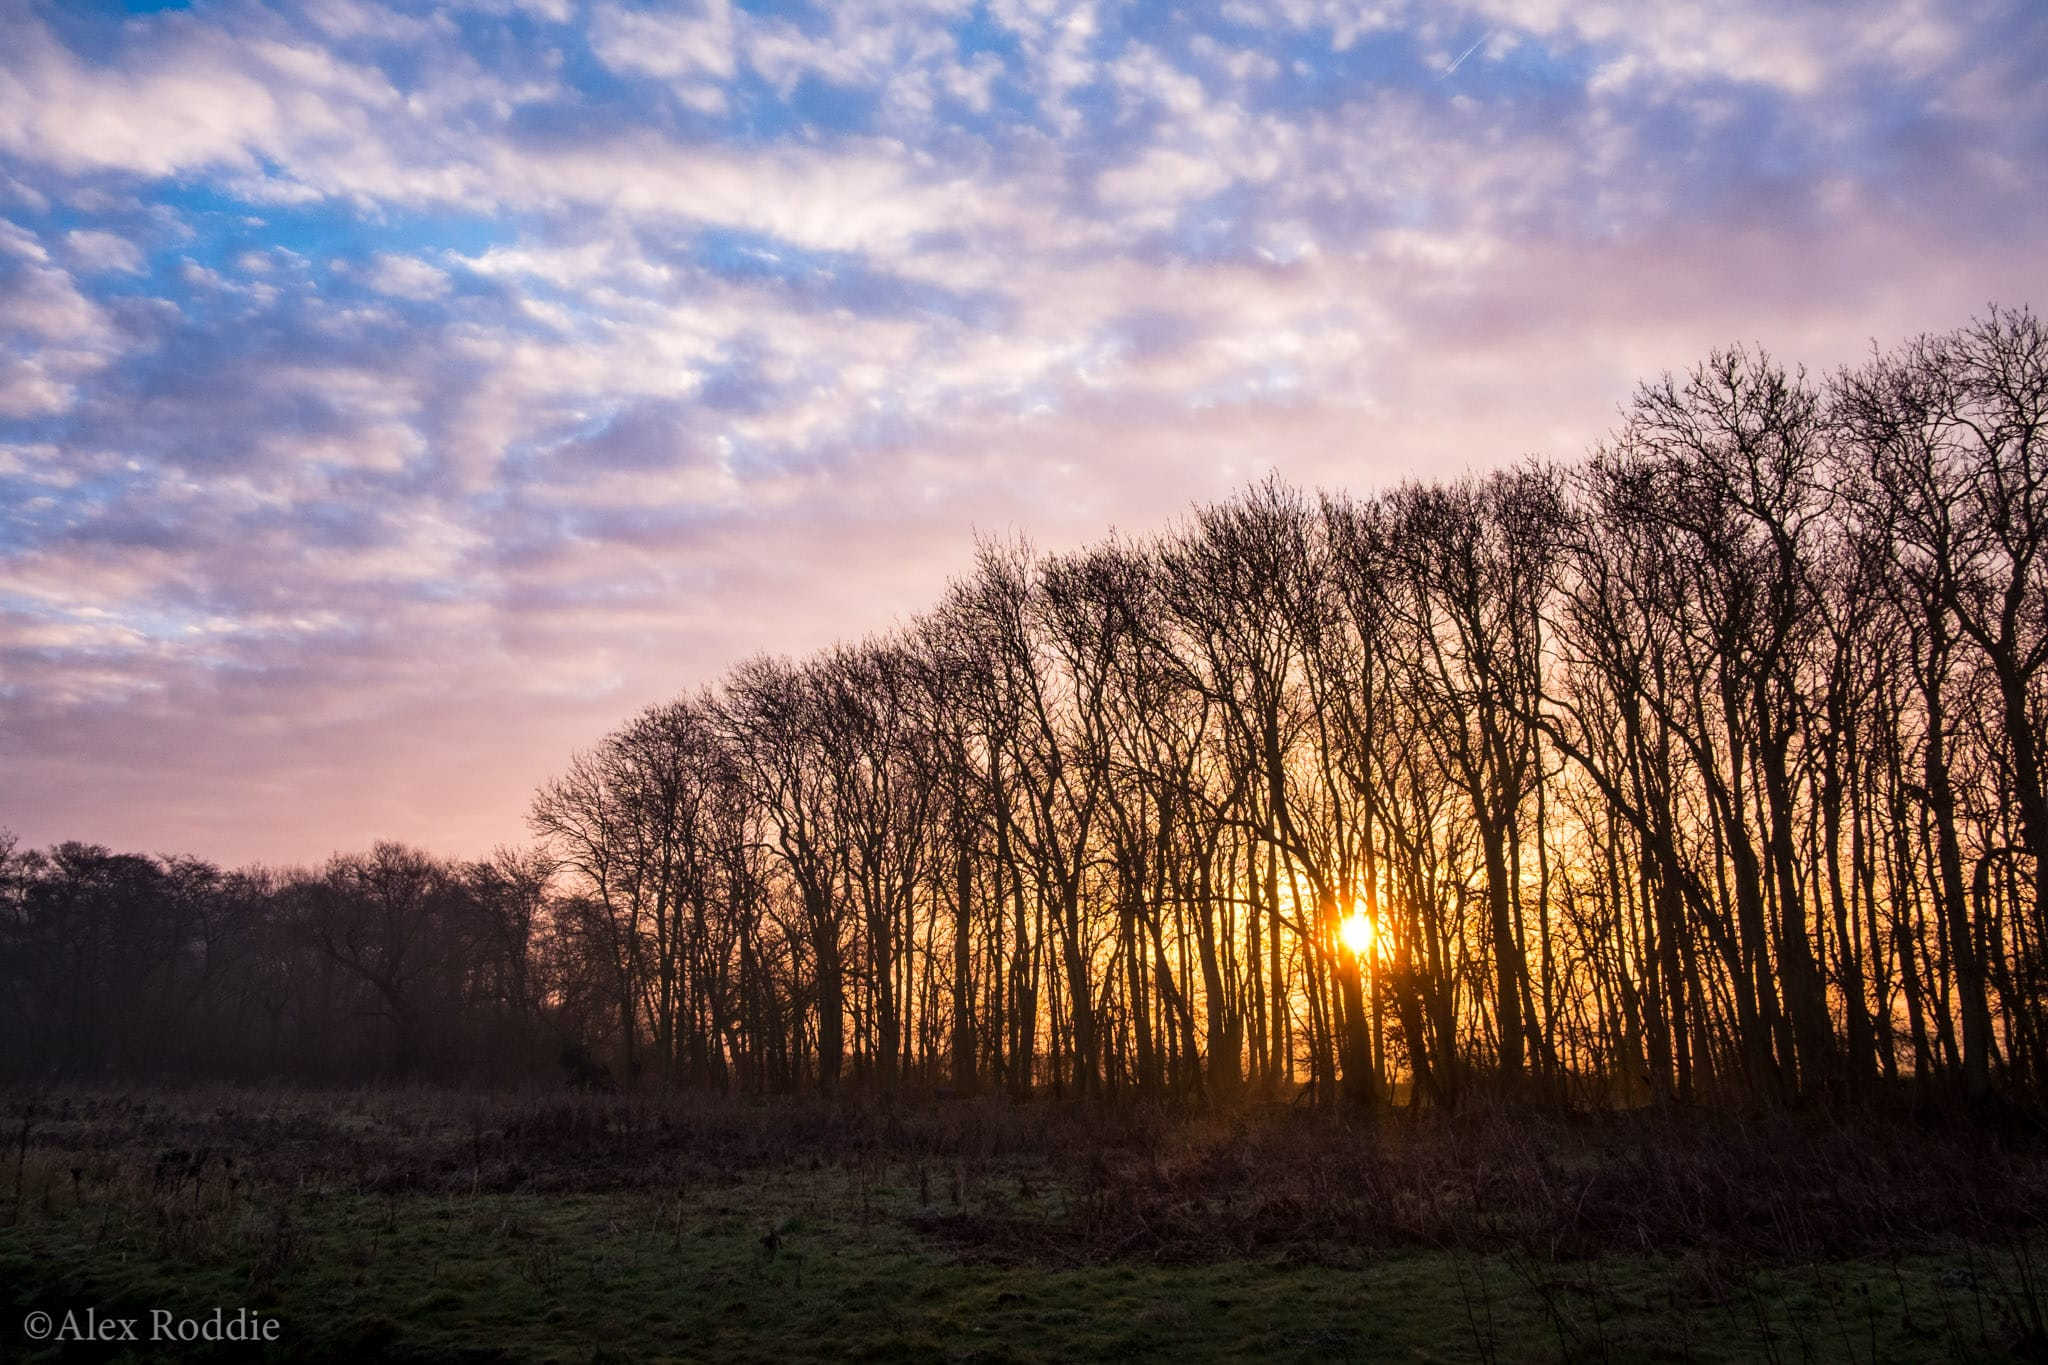 Sunrise at the edge of the wood